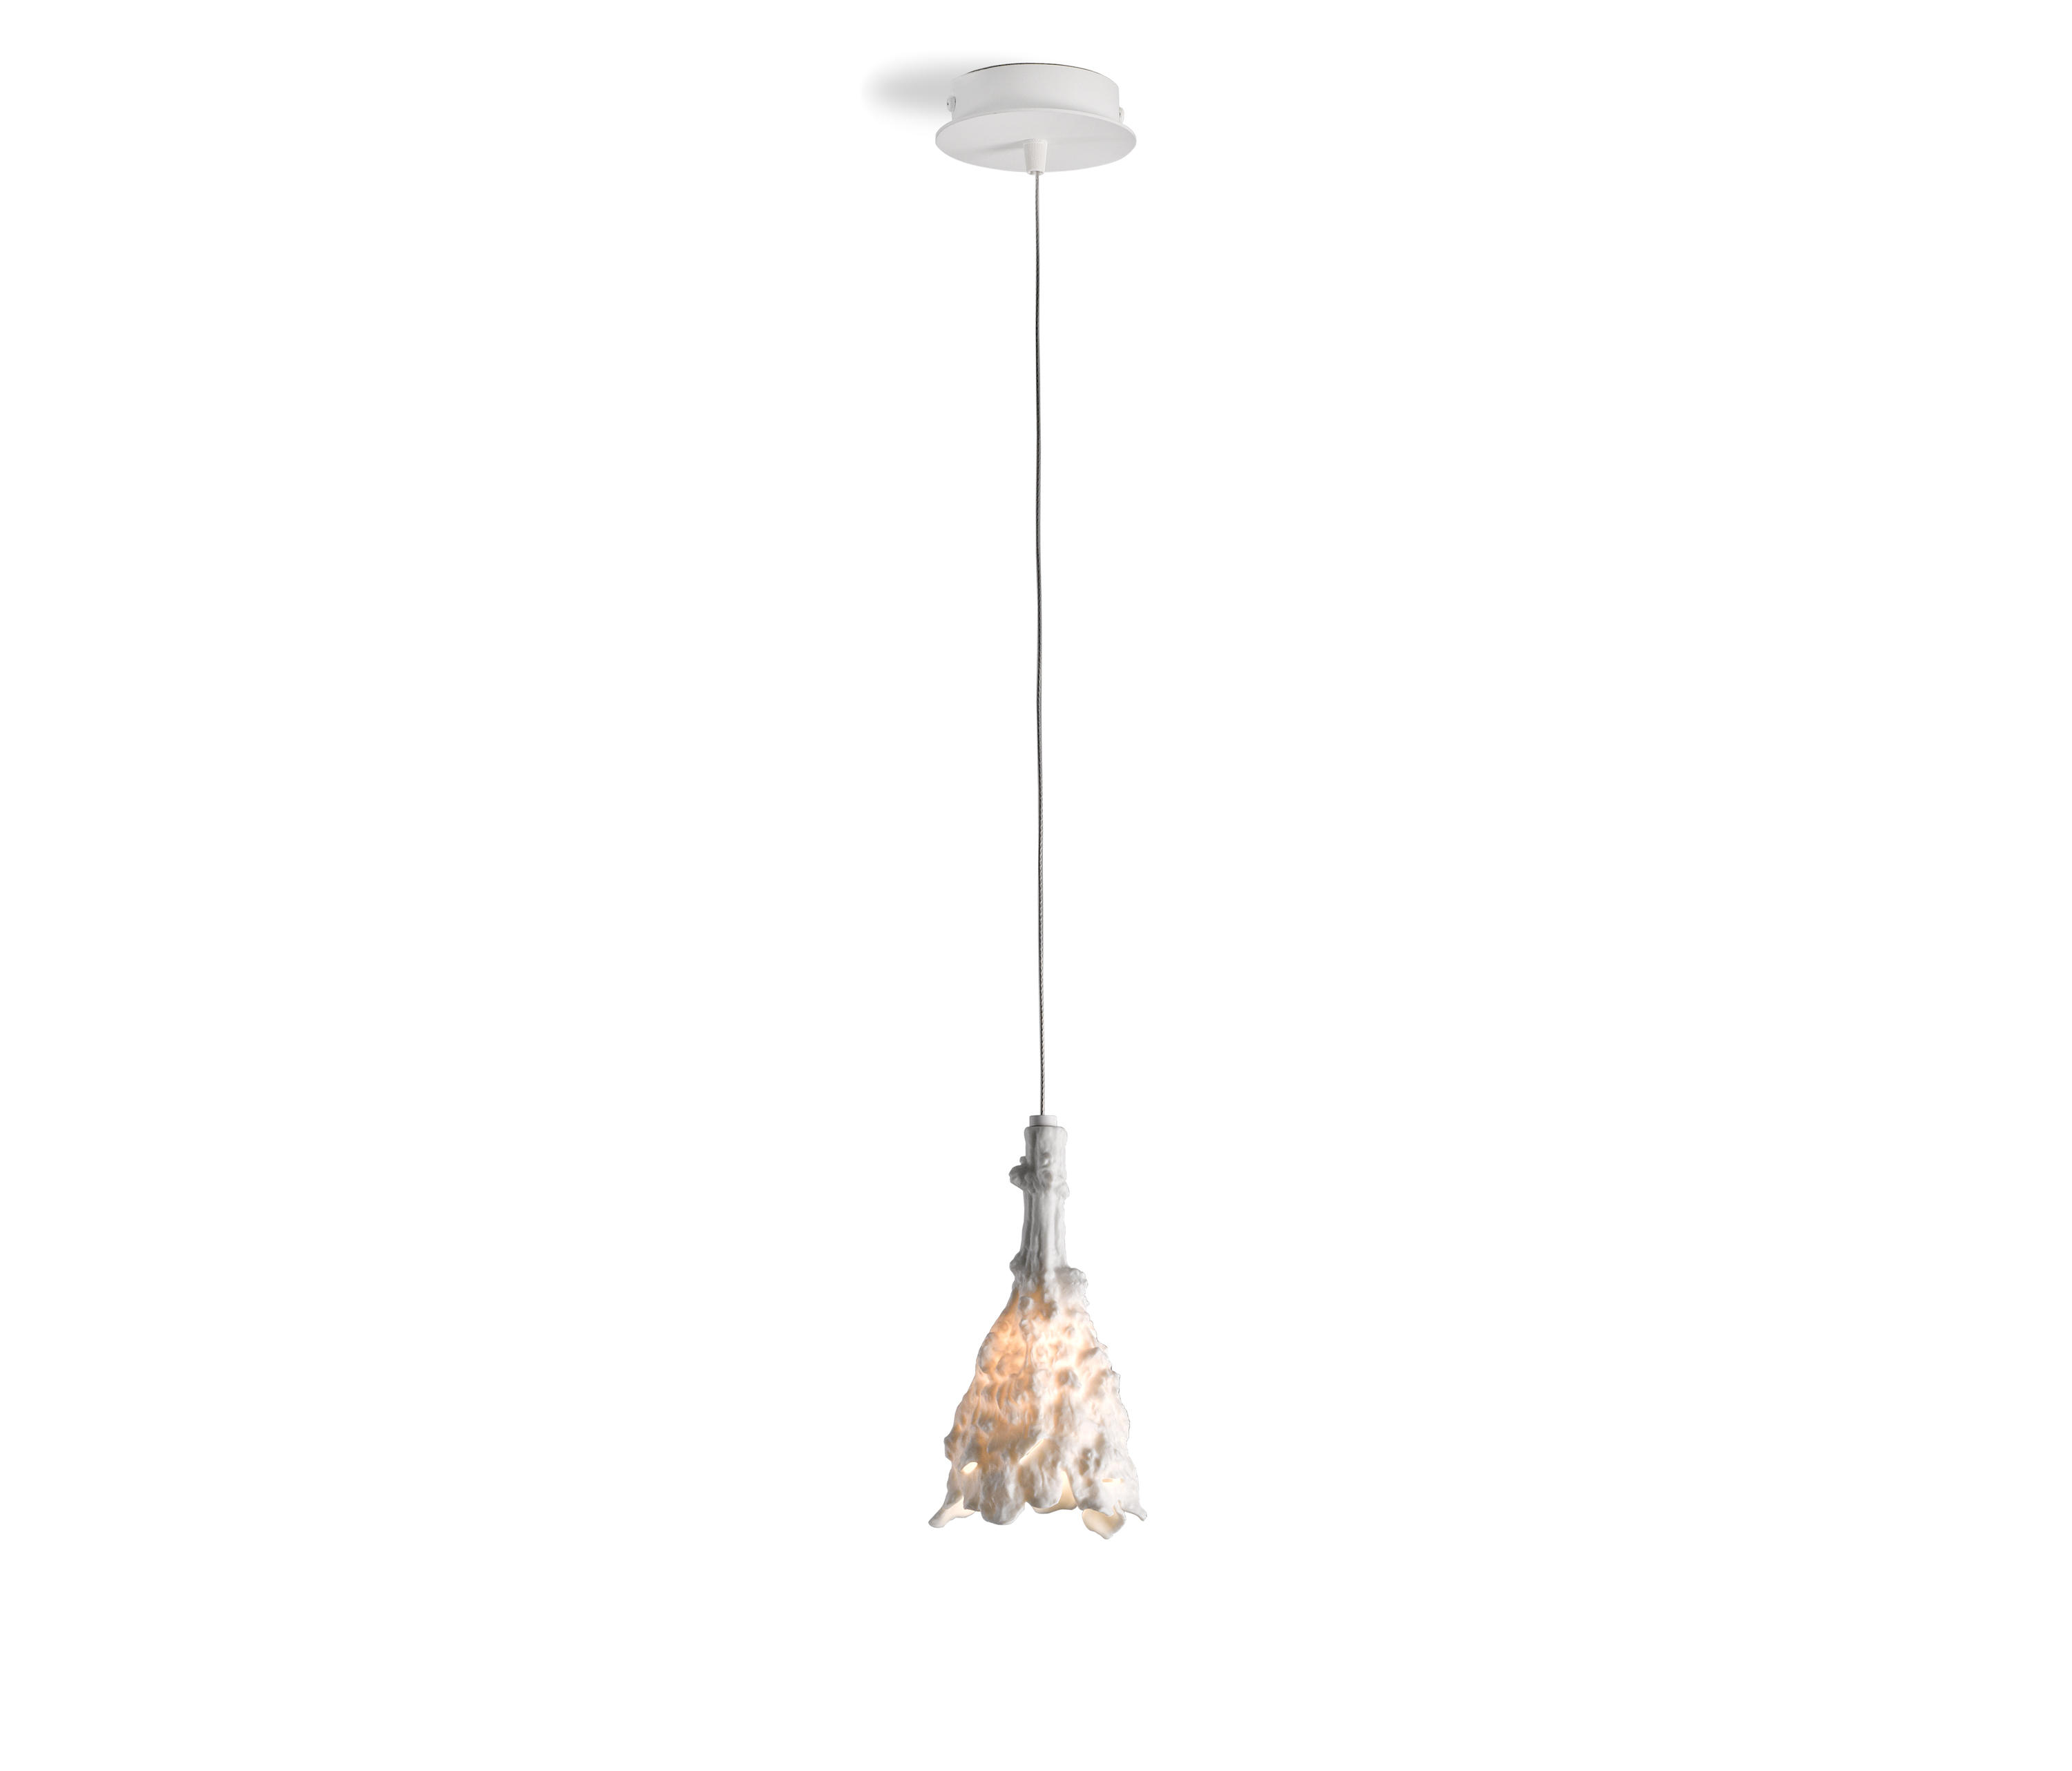 Marco antonio noguern product design on architonic foresta hanging lamp general lighting lladr aloadofball Choice Image